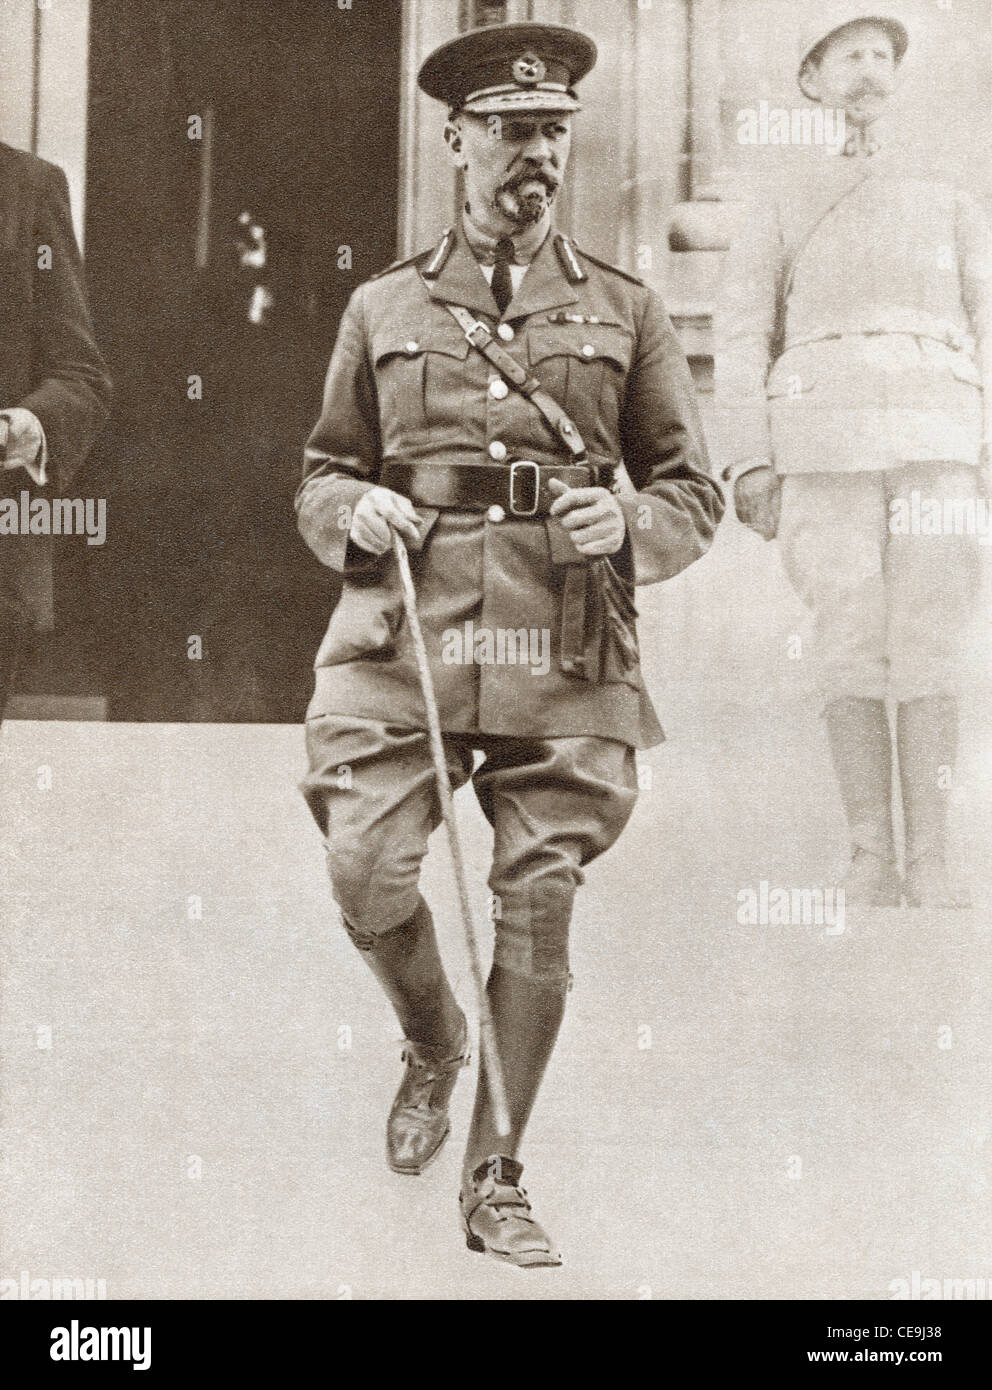 Jan Christiaan Smuts,1870 – 1950. South African military leader and politician. - Stock Image